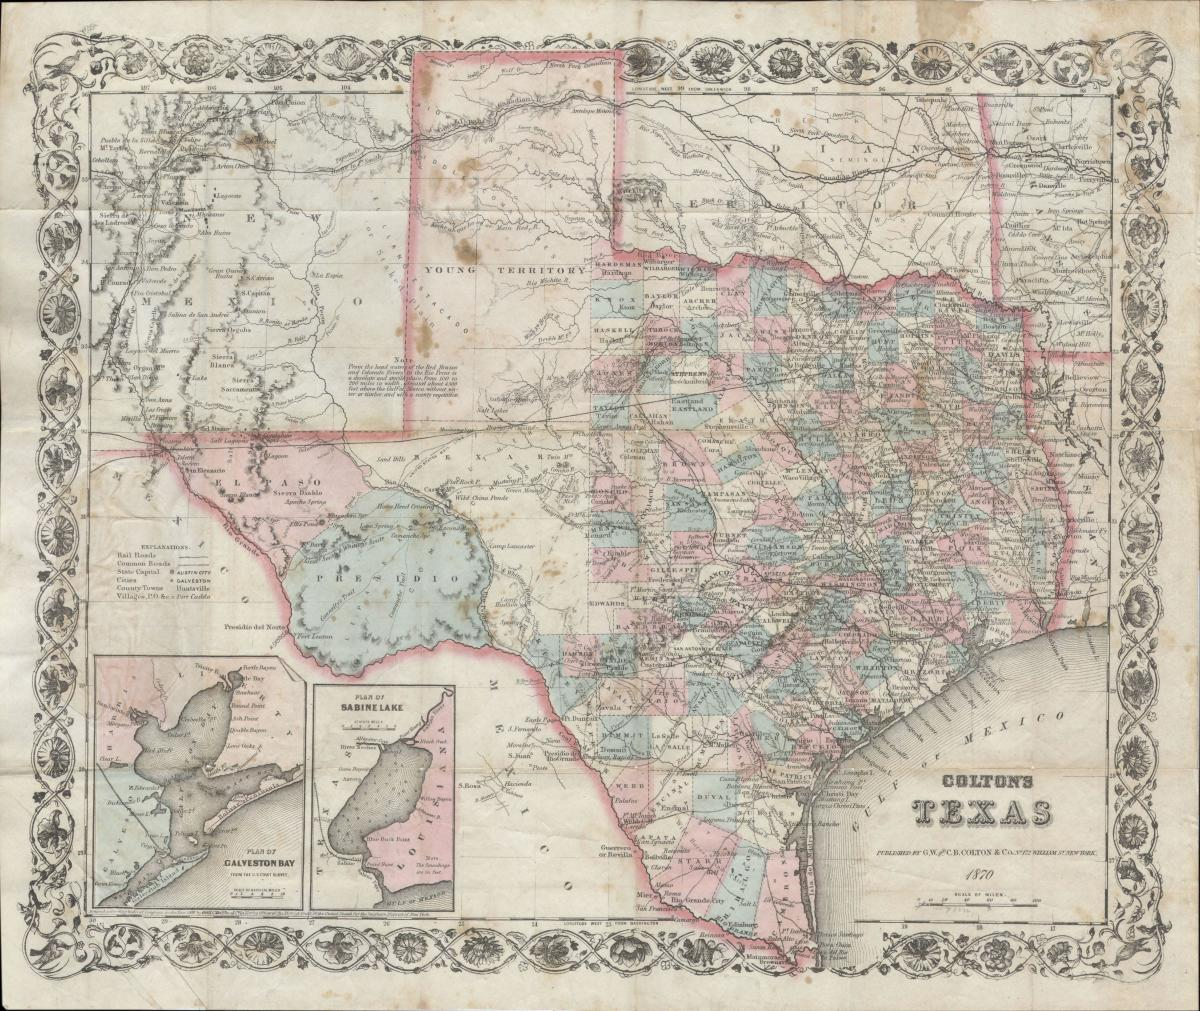 1870 Colton Pocket Map of Texas - Geographicus